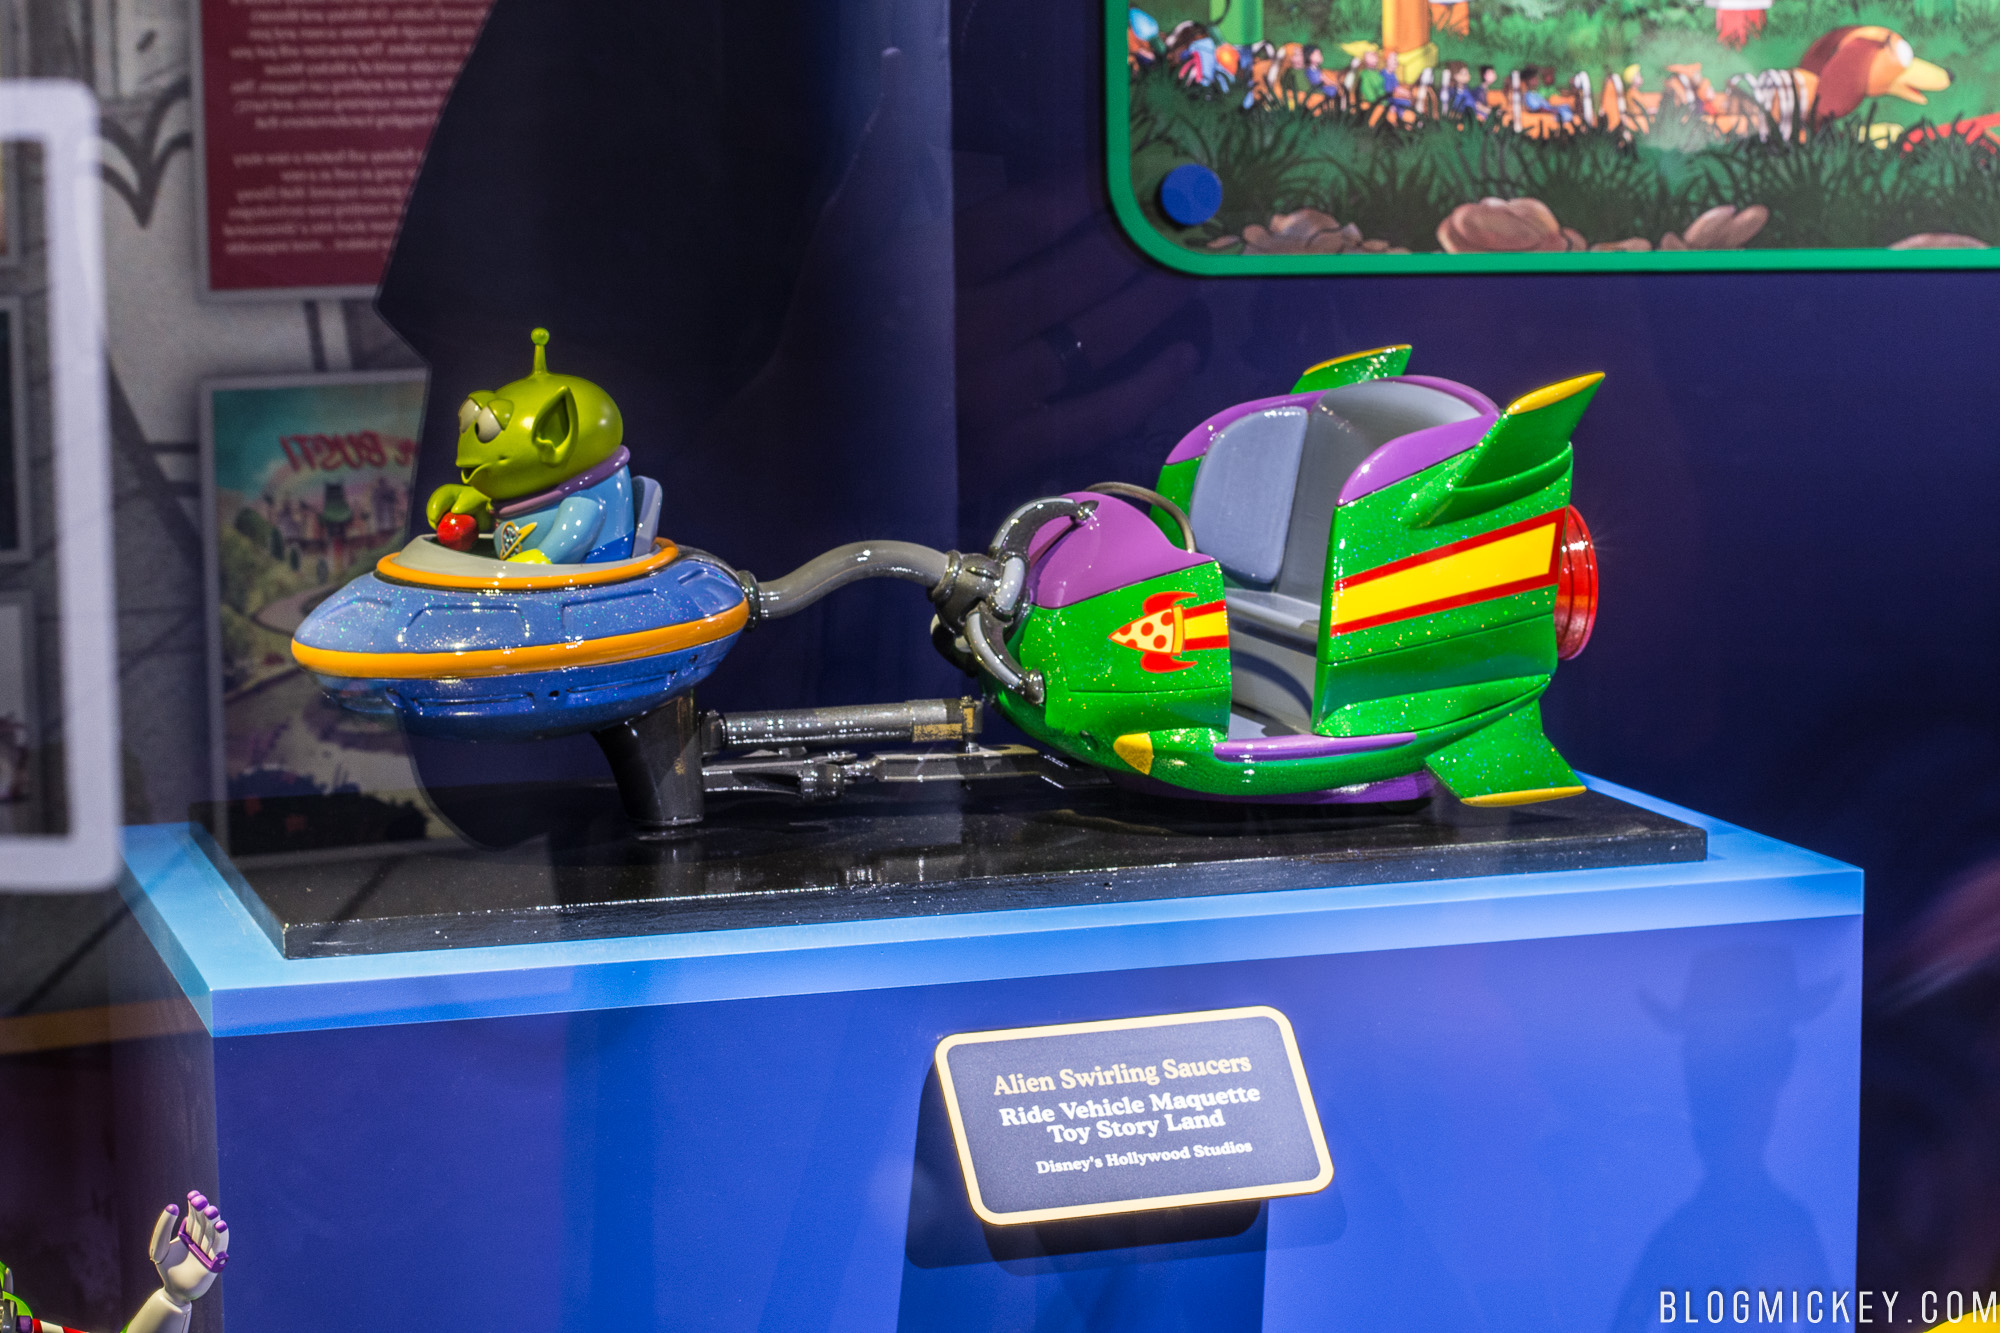 Photo New Concept Art Released For Alien Swirling Saucers